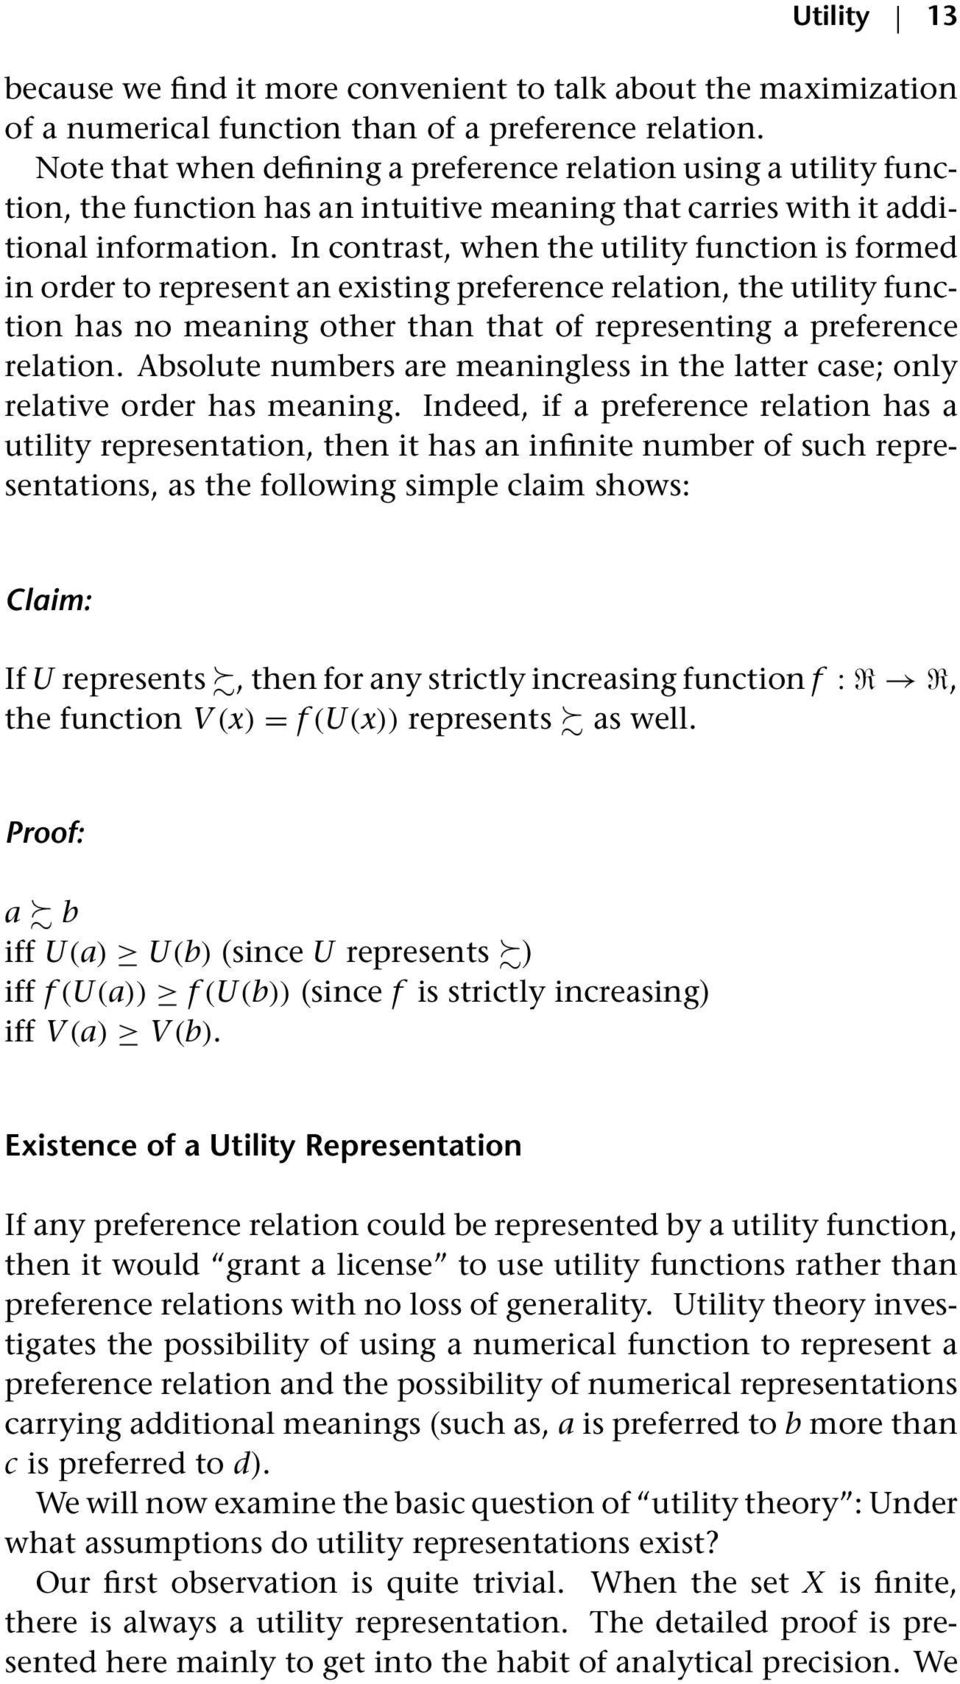 In contrast, when the utility function is formed in order to represent an existing preference relation, the utility function has no meaning other than that of representing a preference relation.